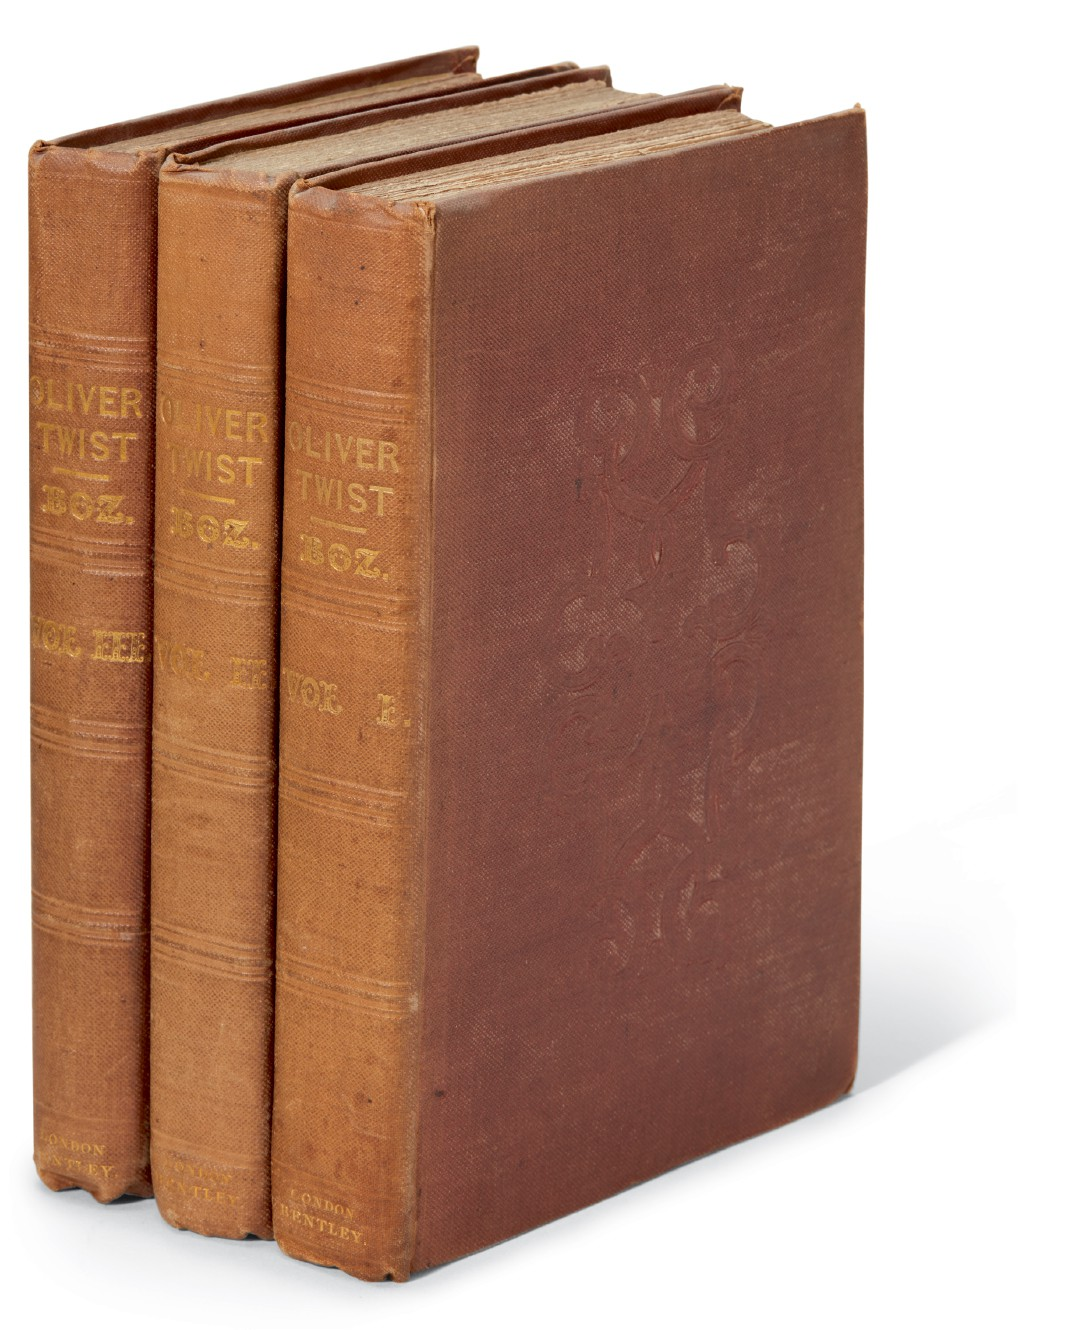 Dickens, Oliver Twist, 1838, first edition, second issue